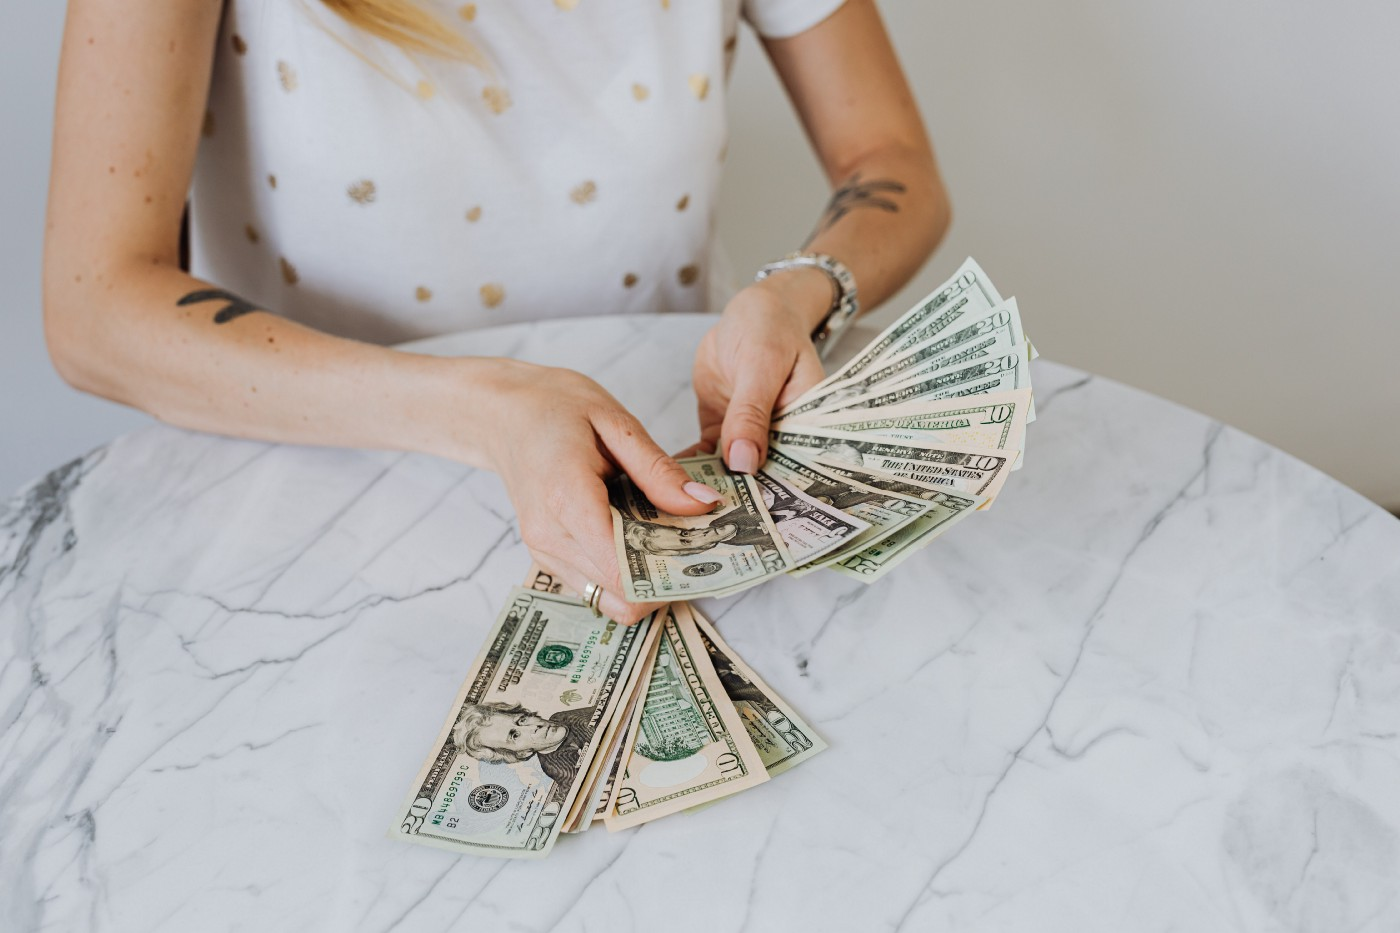 A feminine presenting person's torso is showing as they count twenty dollar bills on top of a round, white marble table. Their tattoos are visible on the inside of each arm as well as a watch on their left wrist.